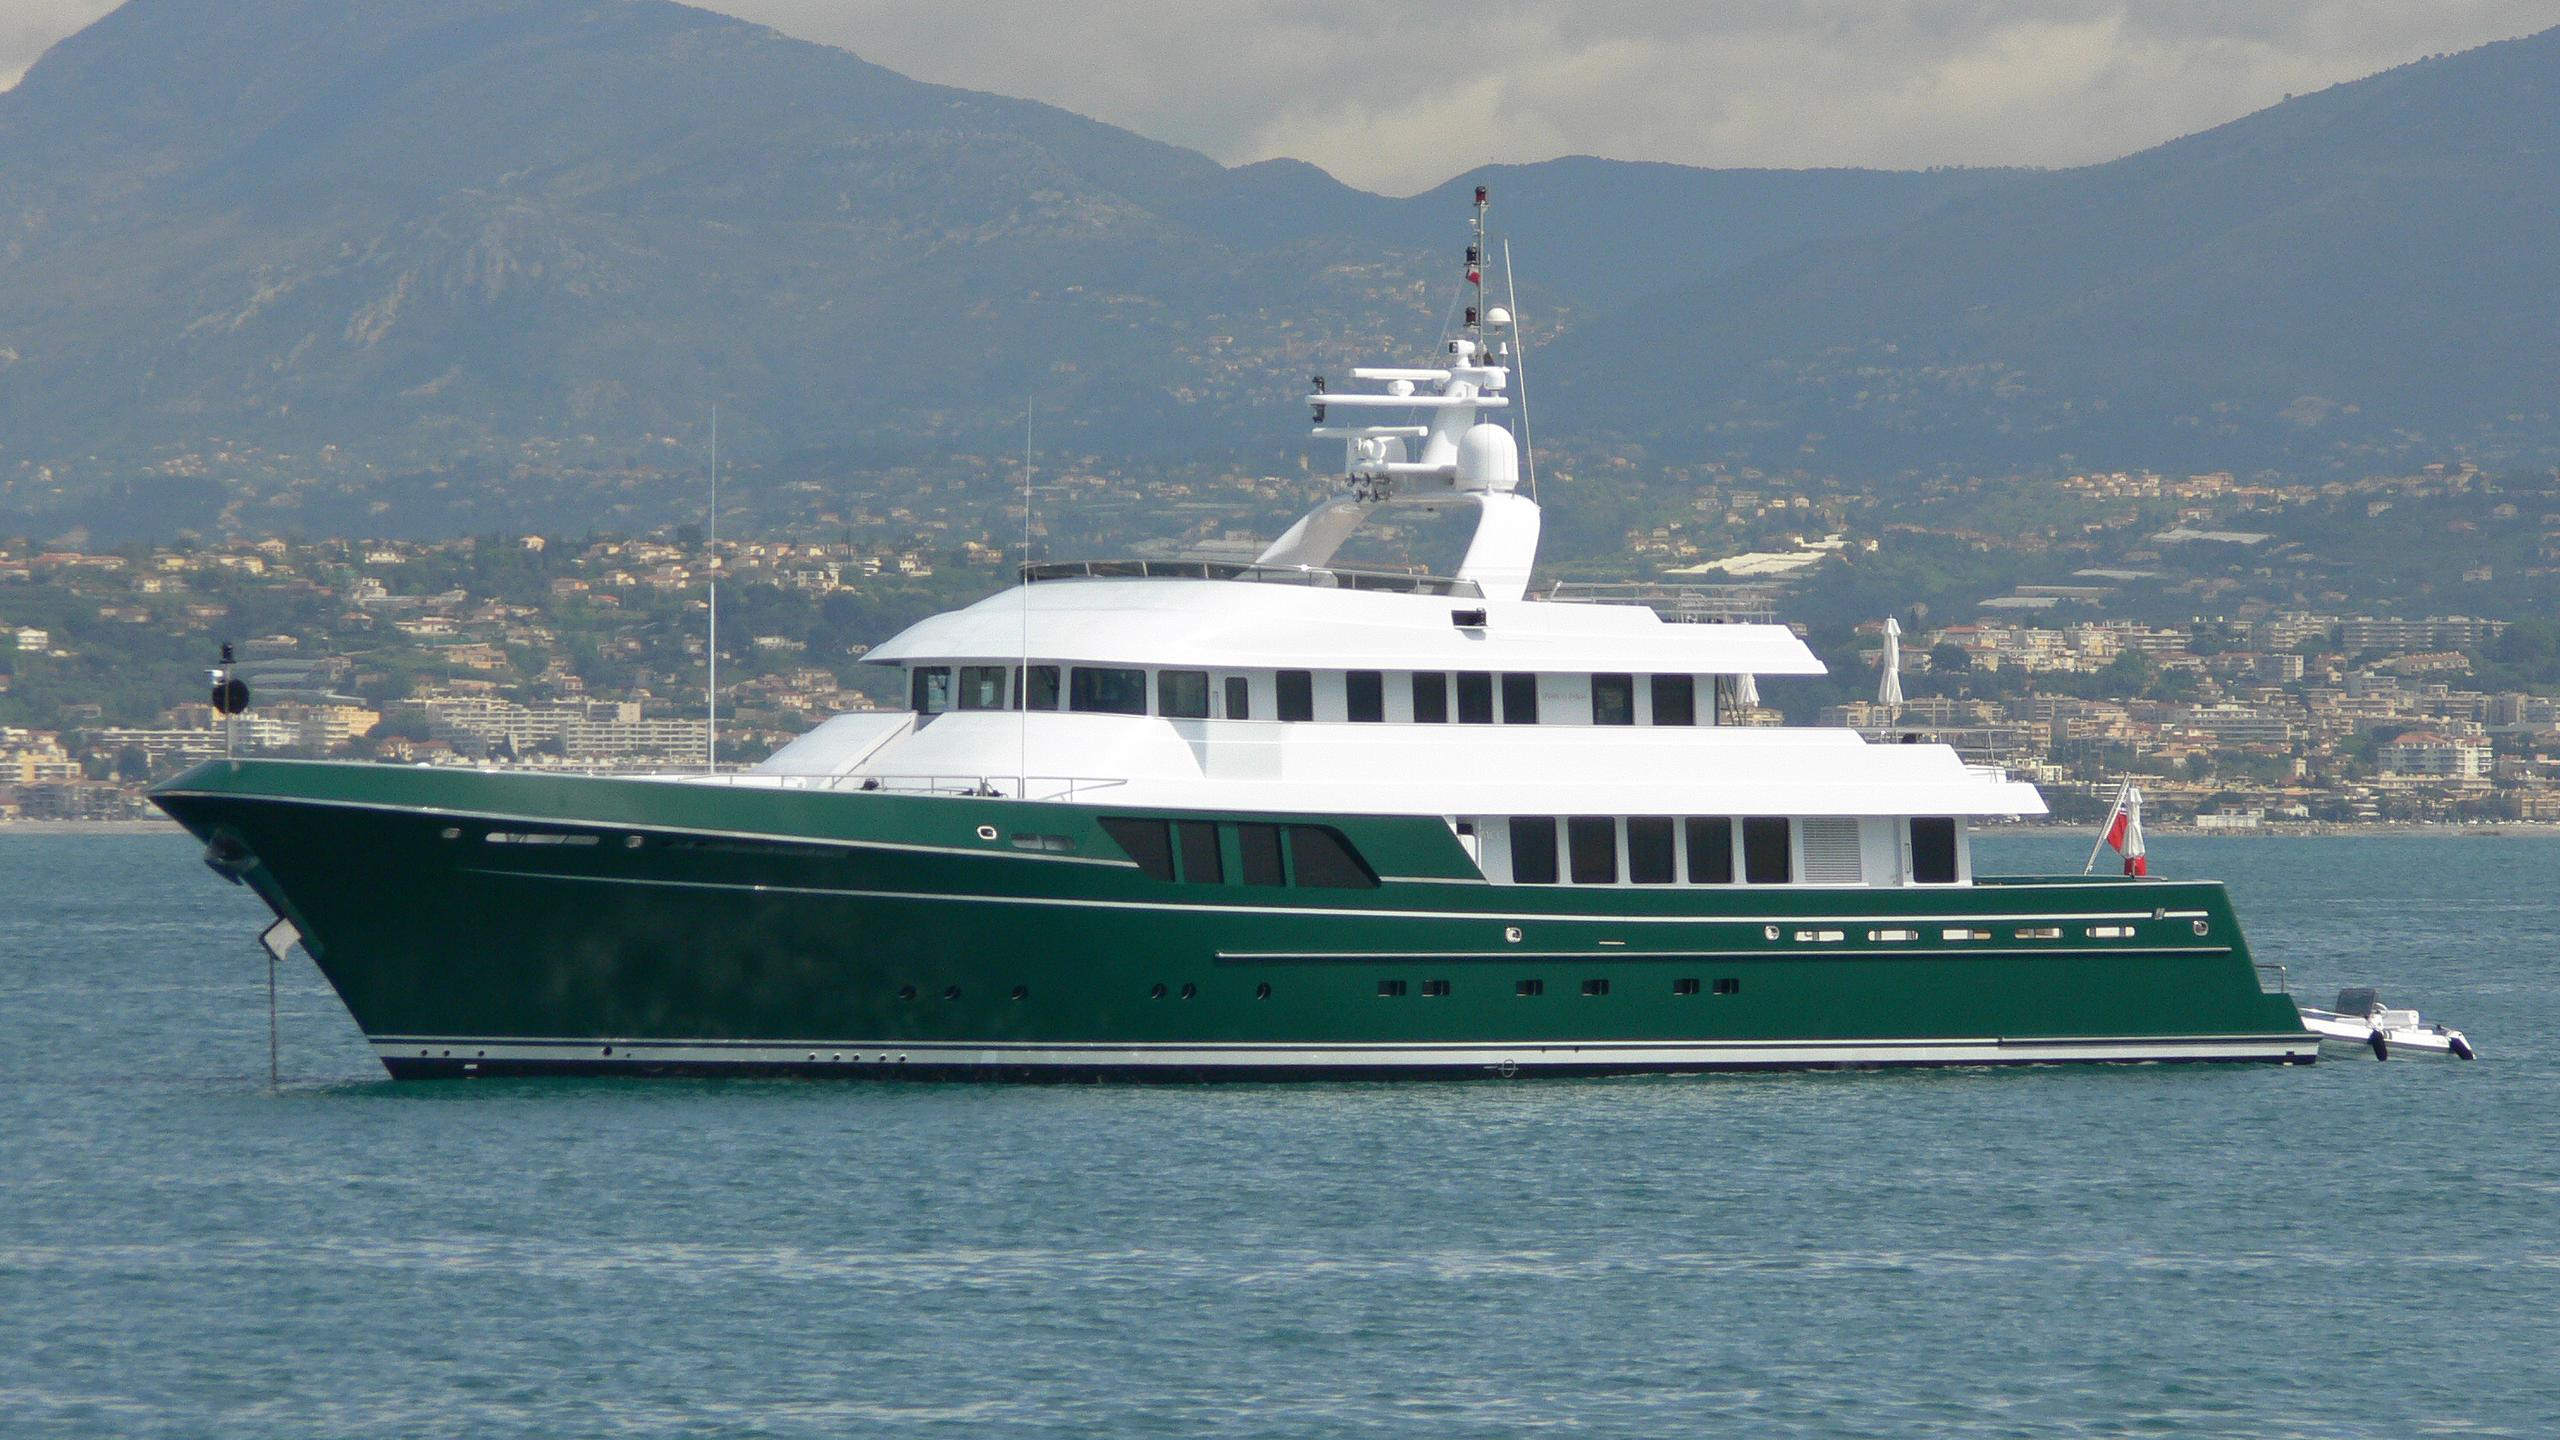 dorothea-iii-transocean-explorer-yacht-cheoy-lee-2007-45m-profile